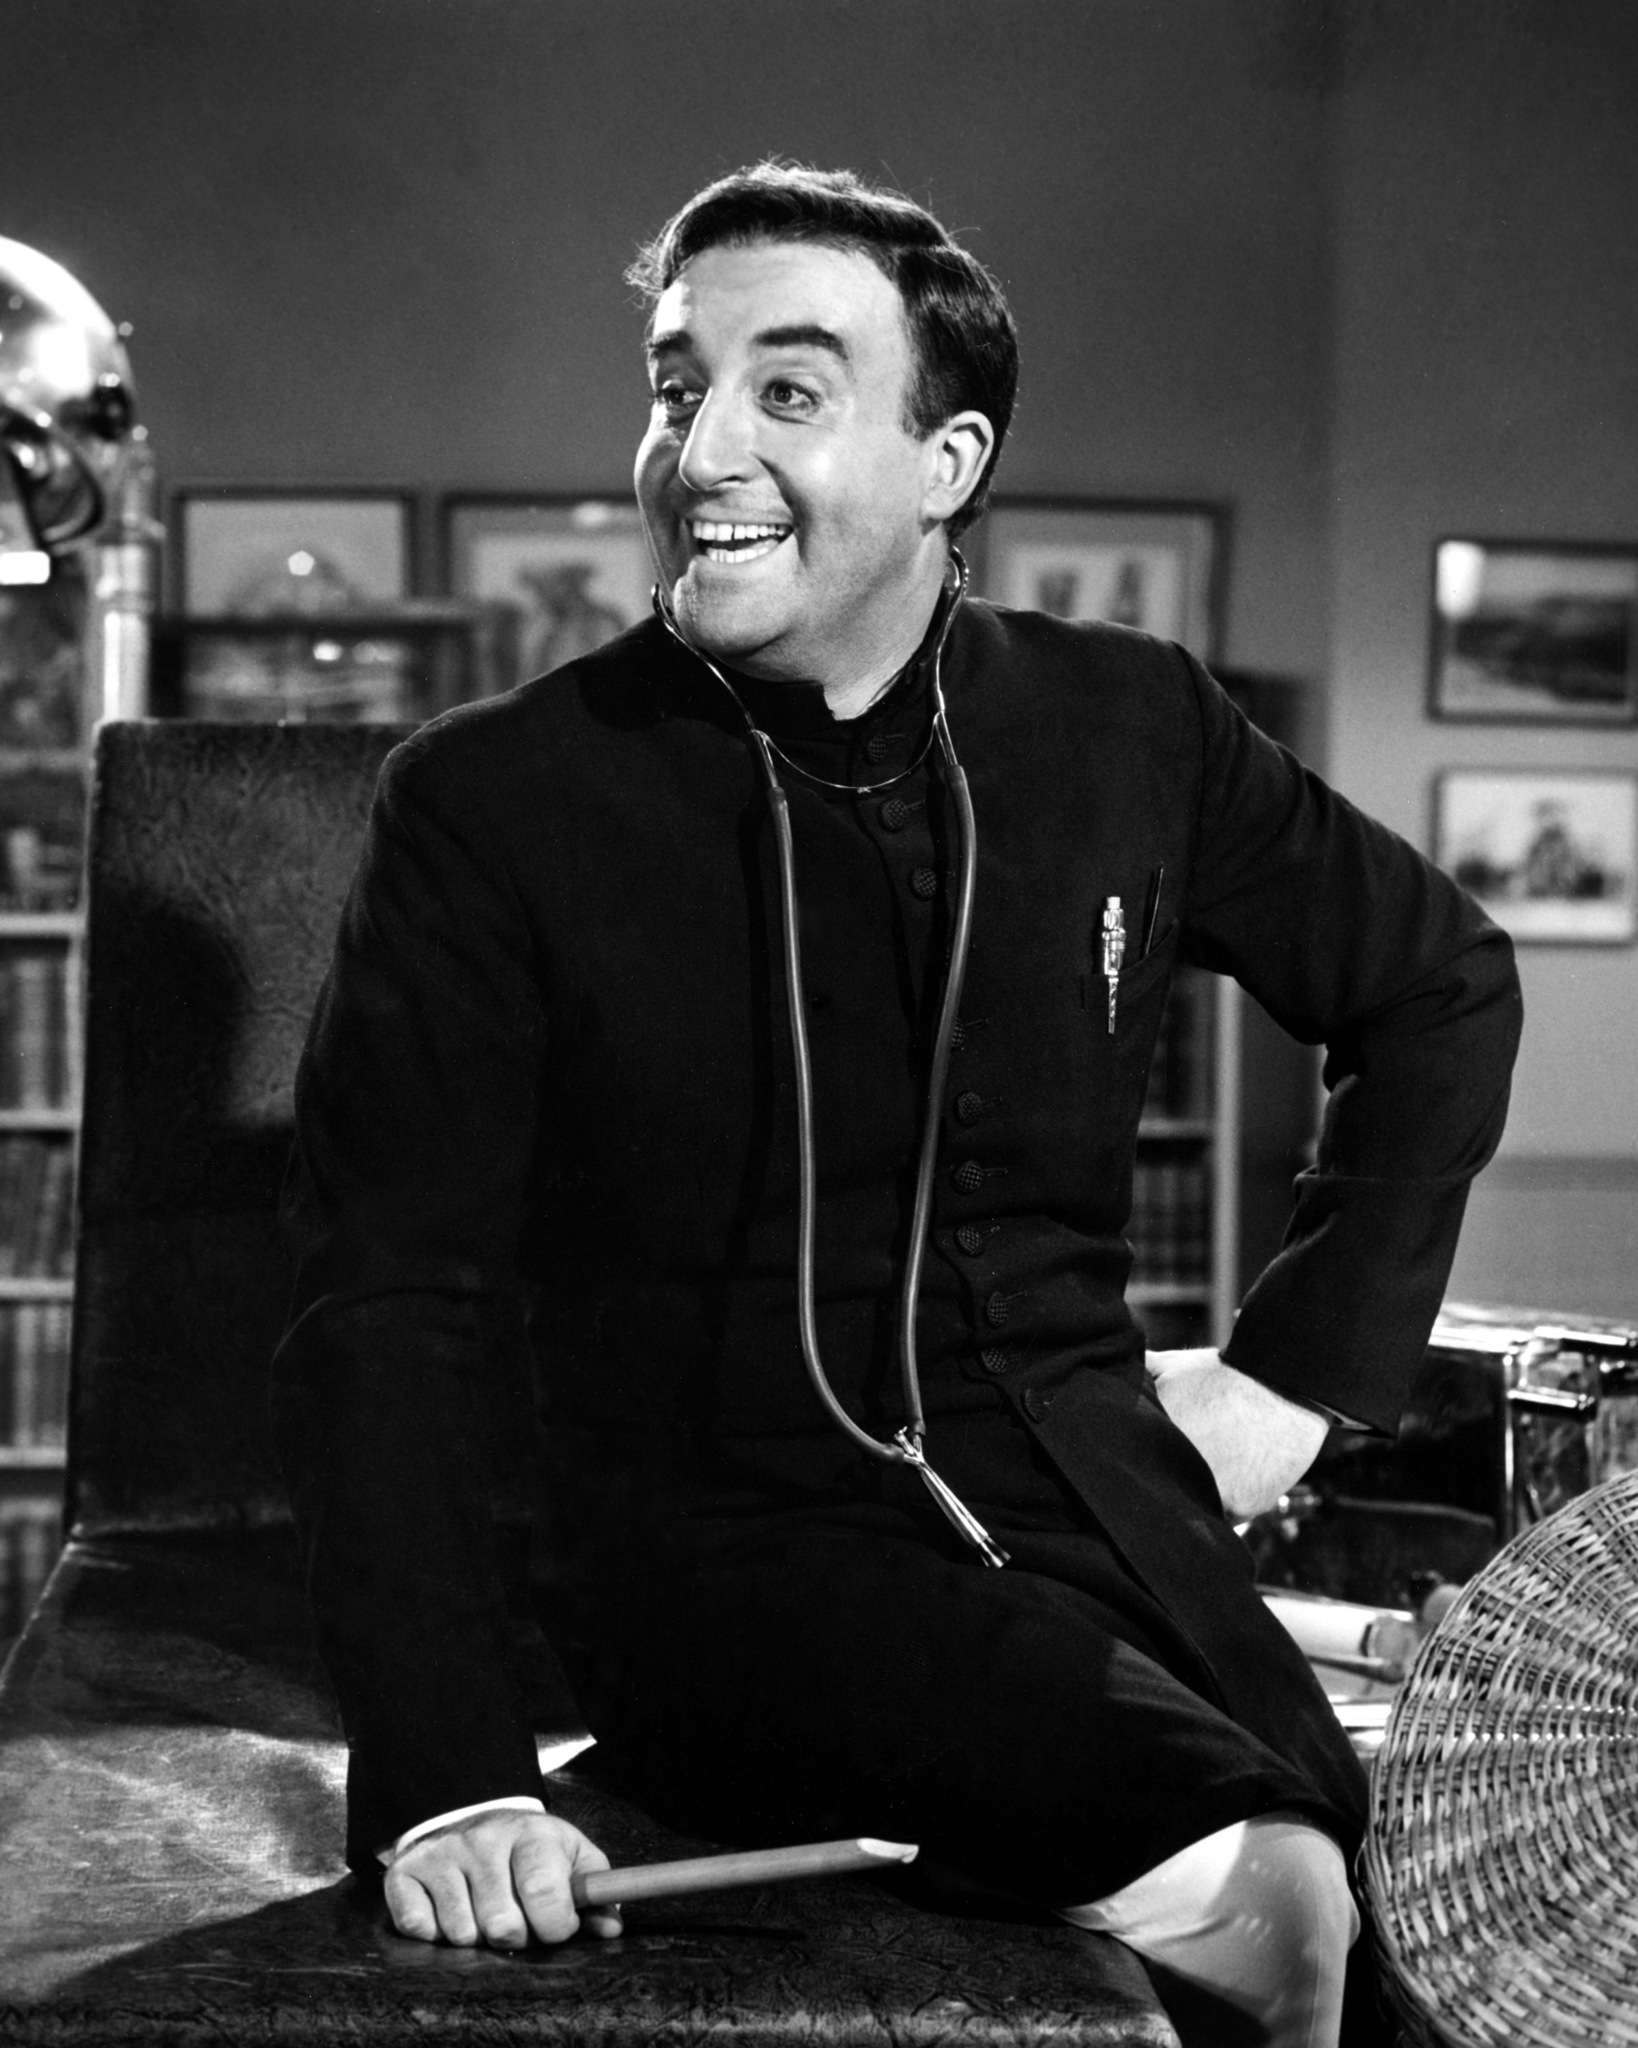 Peter Sellers in The Millionairess (1960)